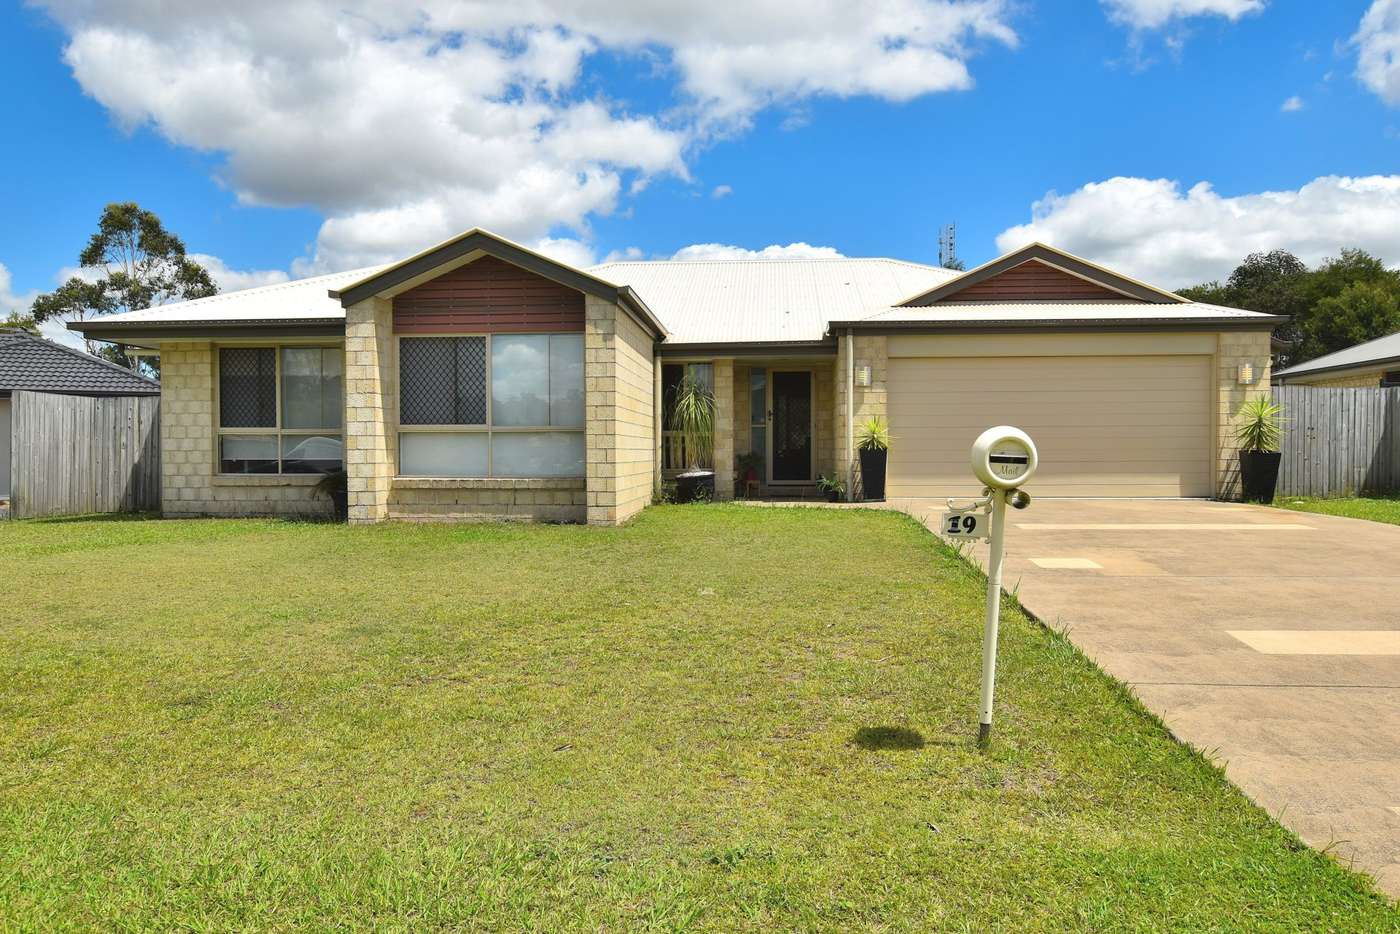 Main view of Homely house listing, 19 Taminga Circuit, D'aguilar QLD 4514